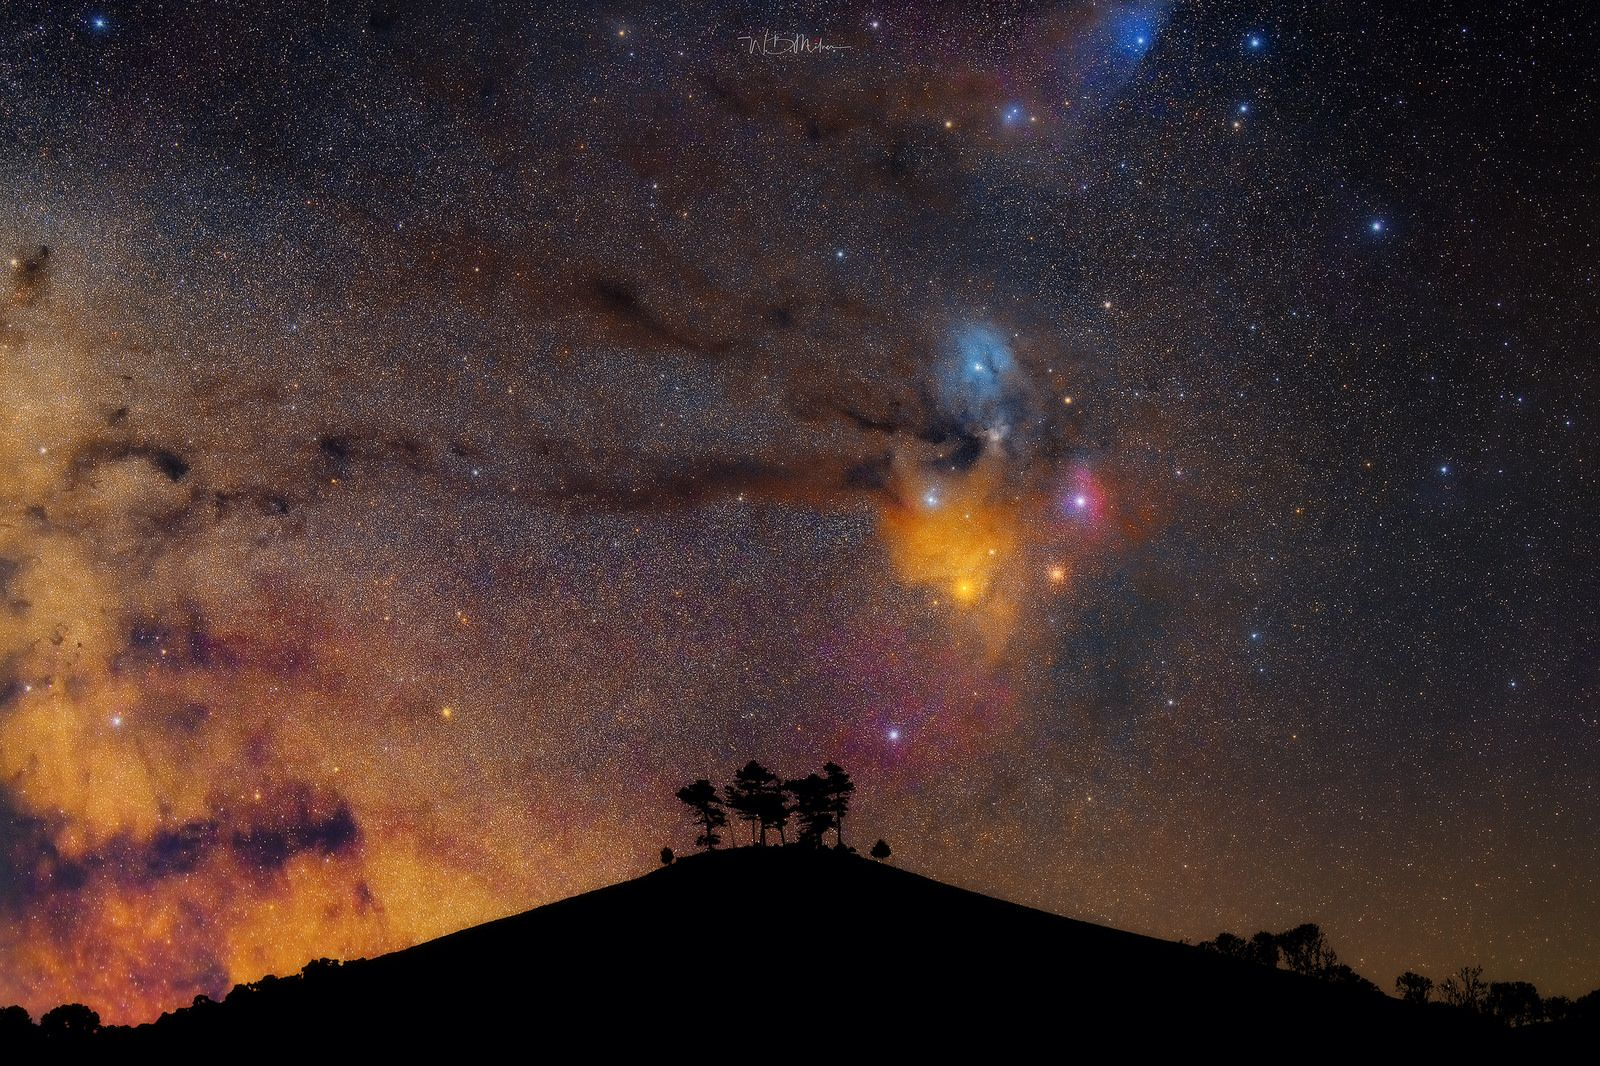 Colmers hill and the rho ophiuchi cloud complex